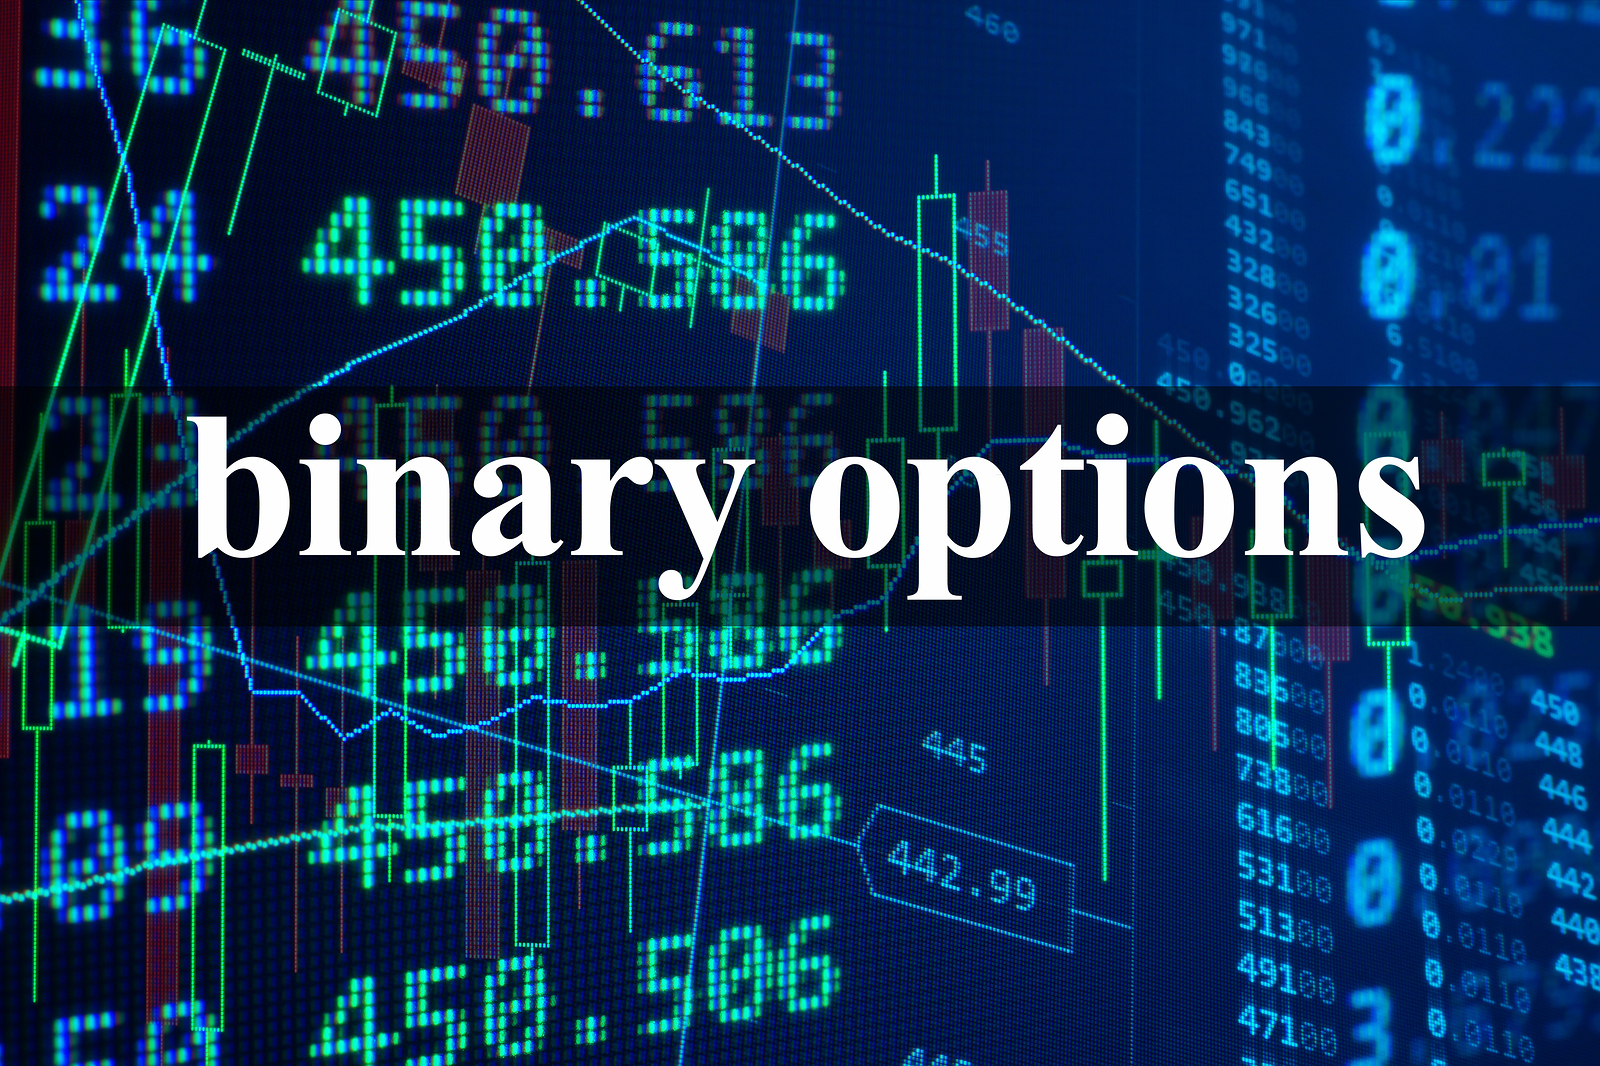 Fsa regulated binary option brokers